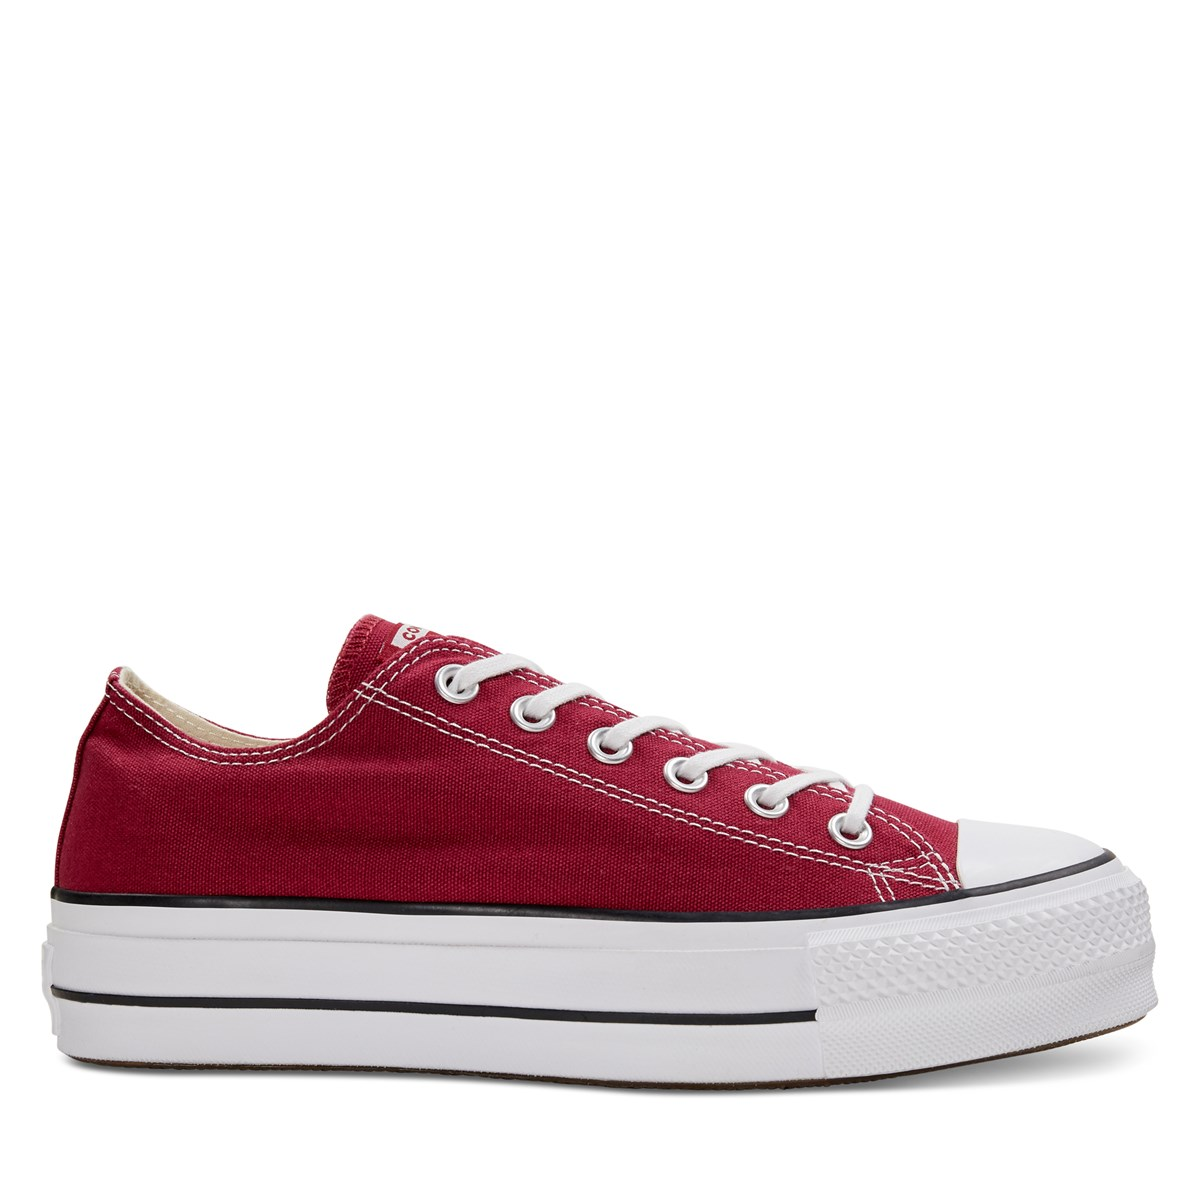 Women's Chuck Taylor All Star Platform Low Top Sneakers in Red